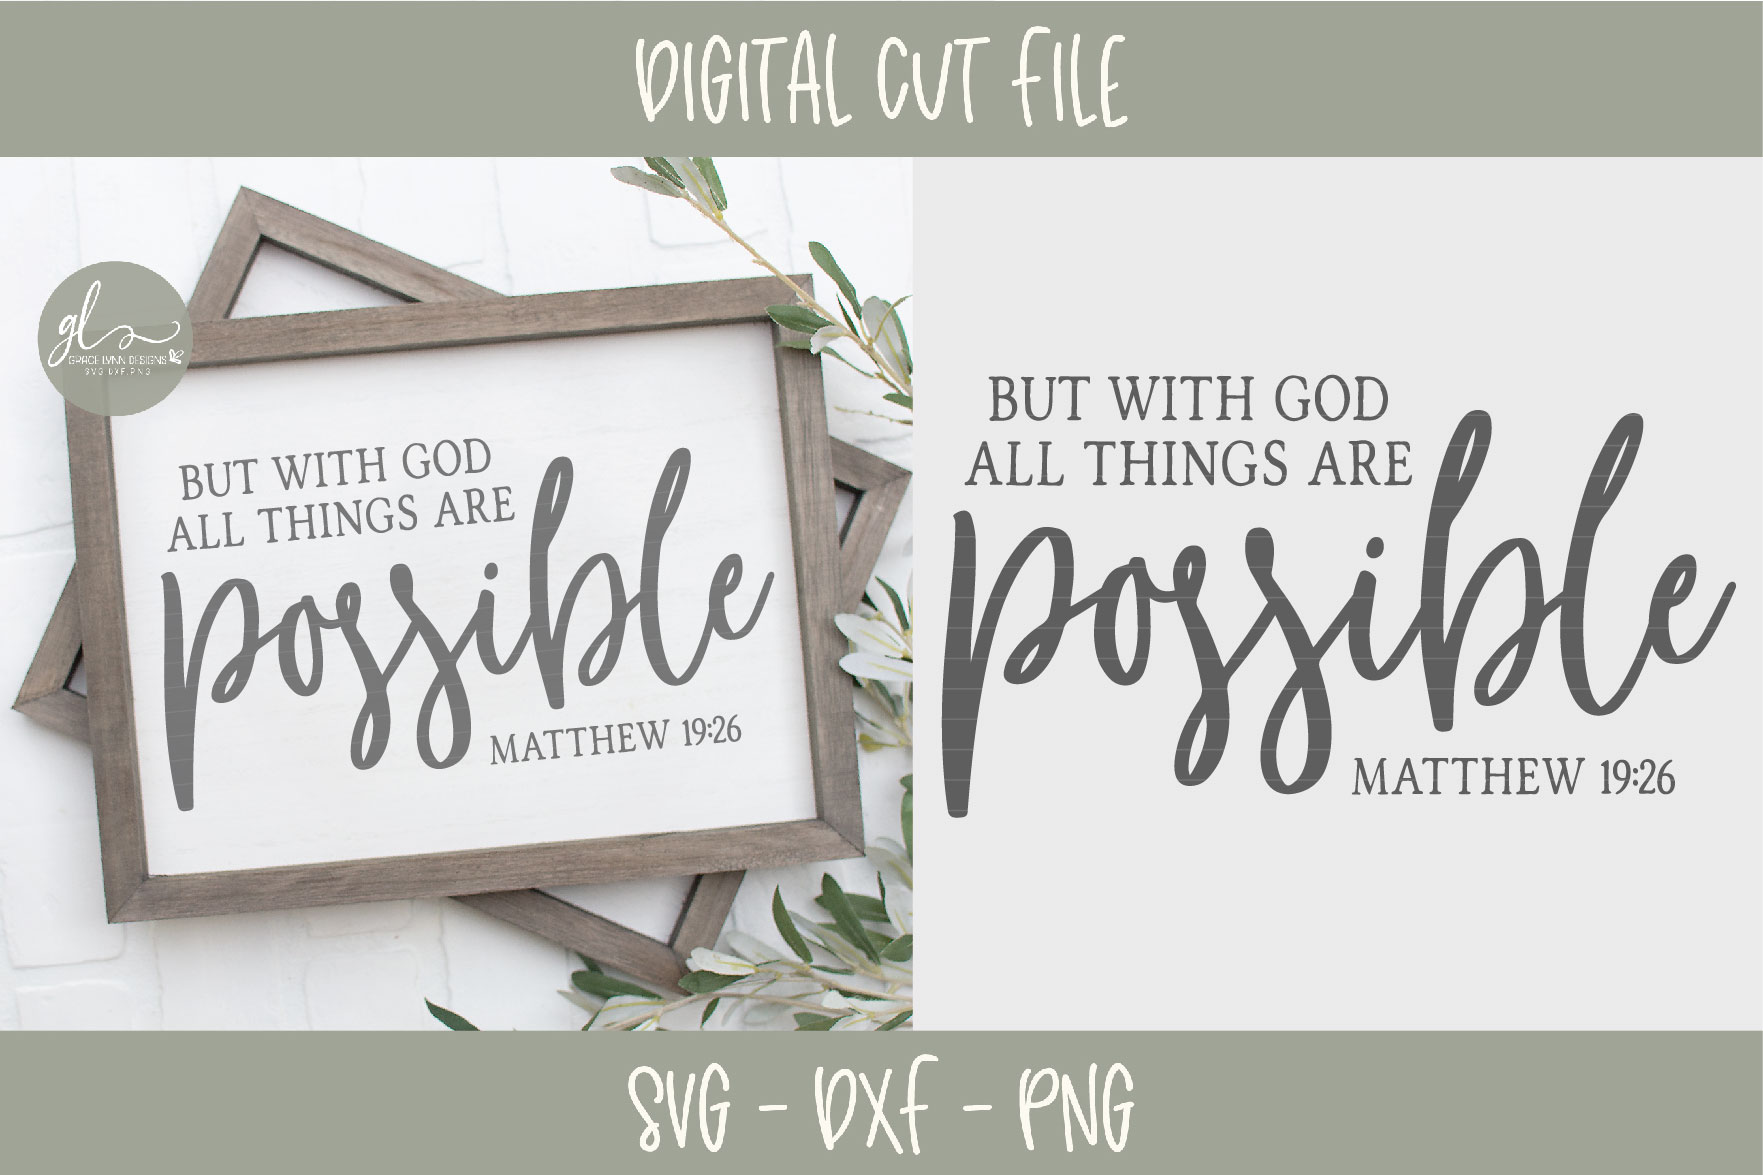 With God All Things Are Possible - SVG Cut File example image 2